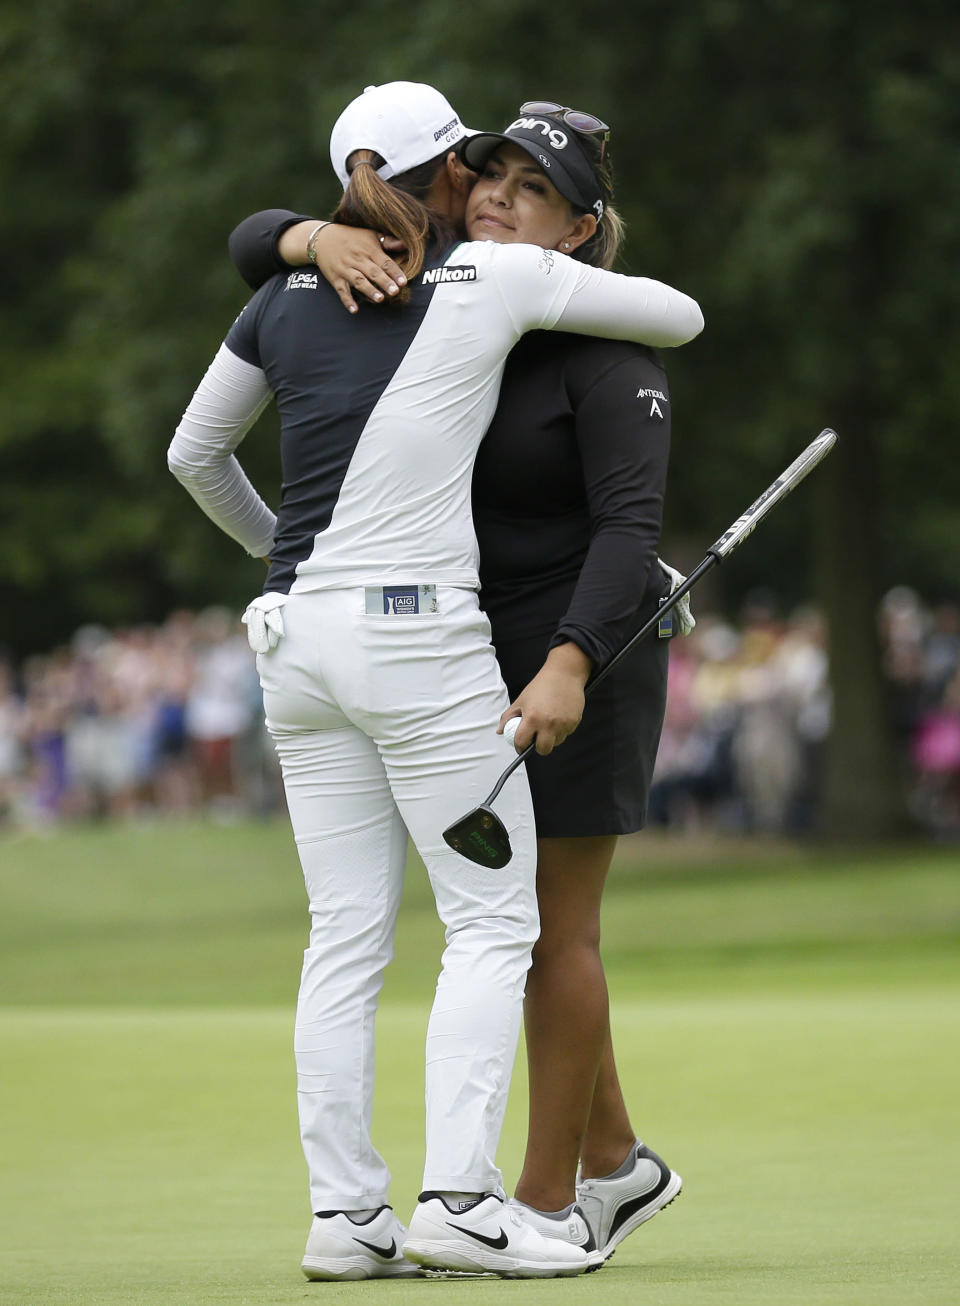 Lizette Salas of the United States, right, embraces, Korea's Ko Jin-young on the 18th green after finishing the final round of the Women's British Open golf championship at Woburn Gold Club near near Milton Keynes, England, Sunday, Aug. 4, 2019. (AP Photo/Tim Ireland)